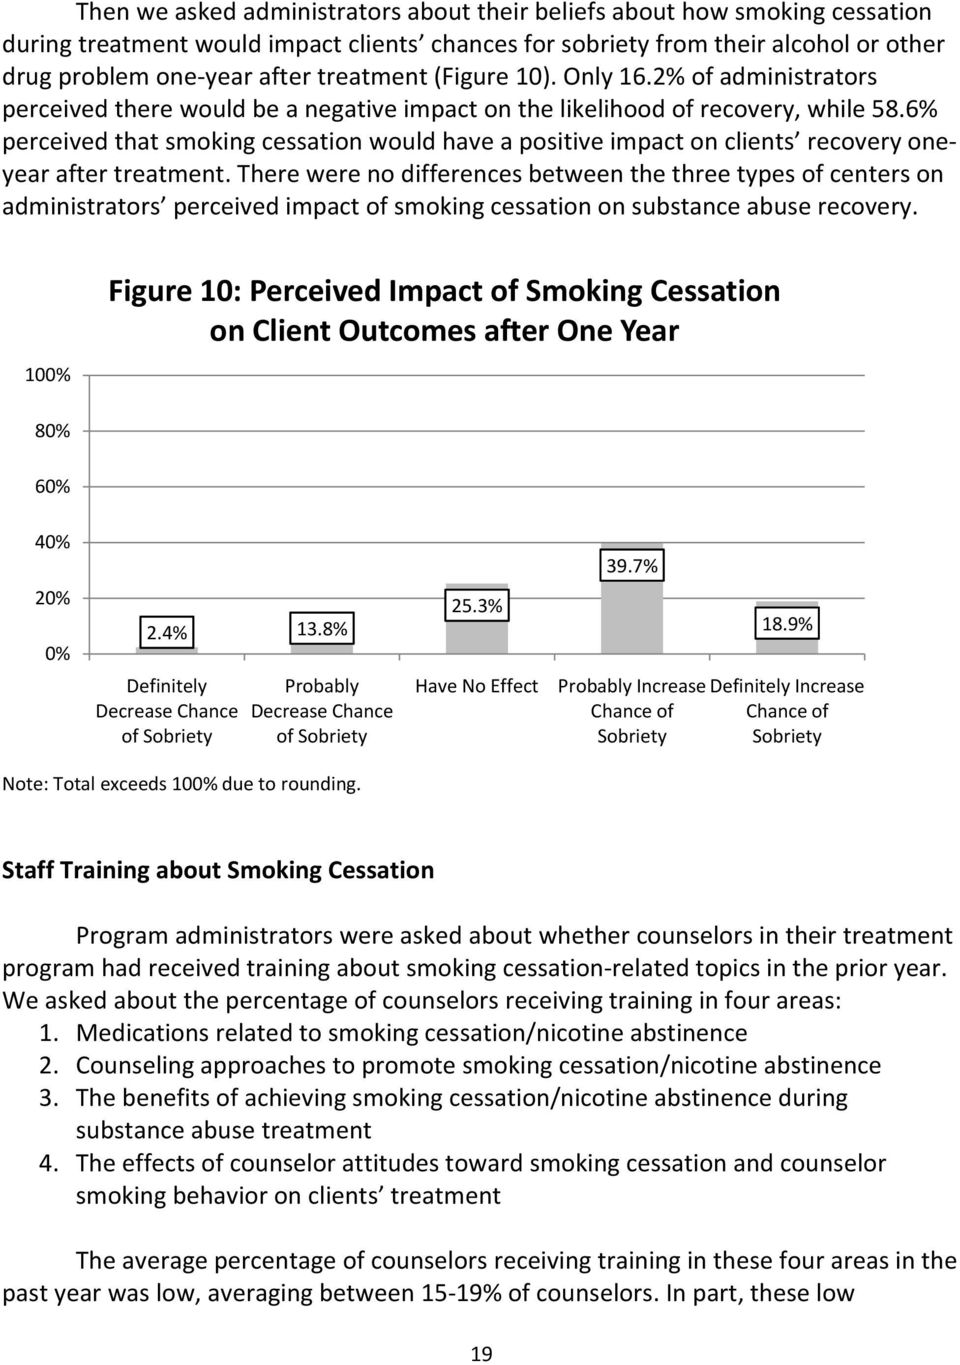 6% perceived that smoking cessation would have a positive impact on clients recovery oneyear after treatment.